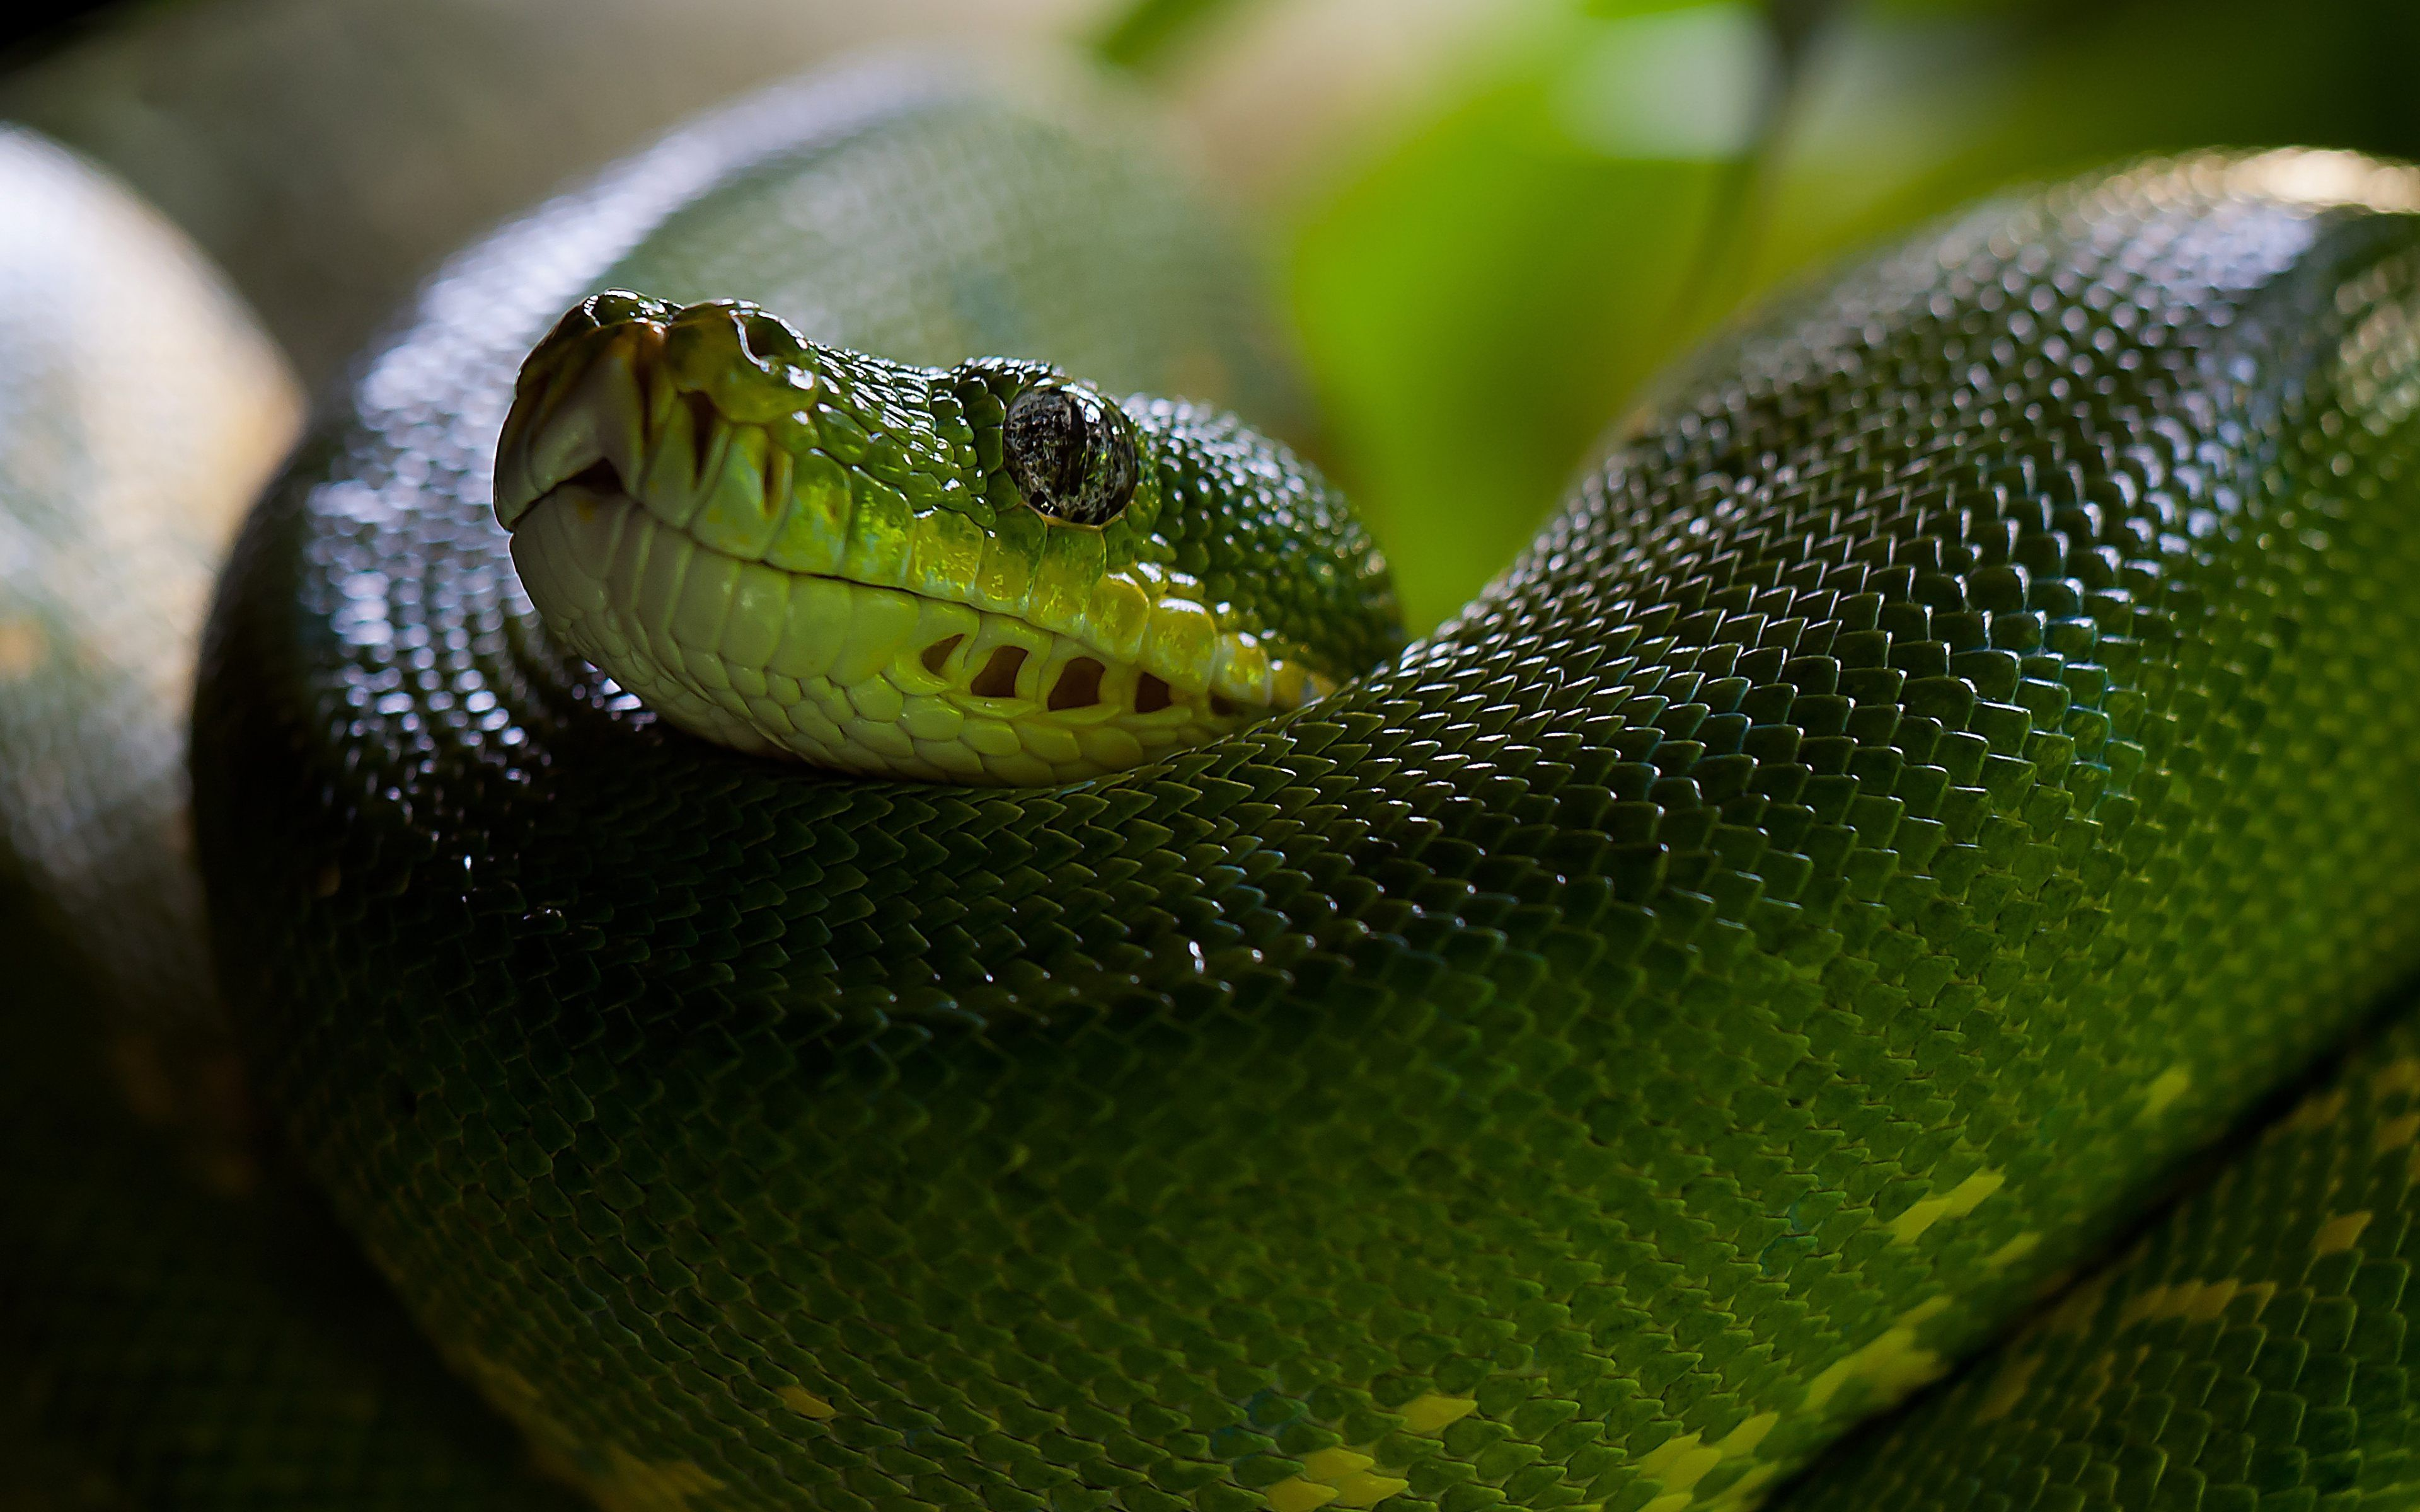 green snake wallpaper with high resolution wallpaper 3840x2400 px